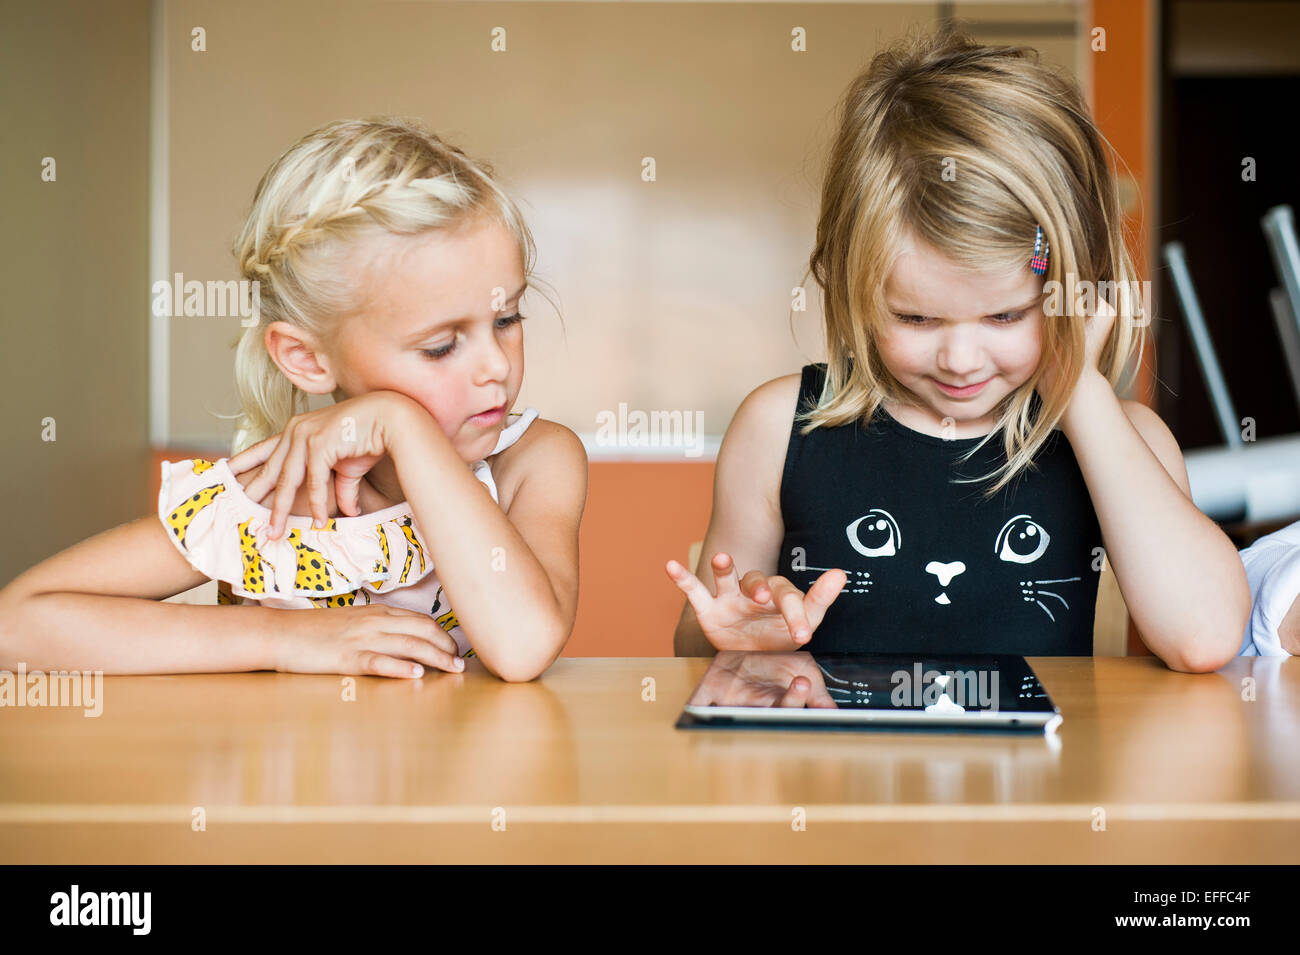 Girl watching classmate using digital tablet in classroom - Stock Image